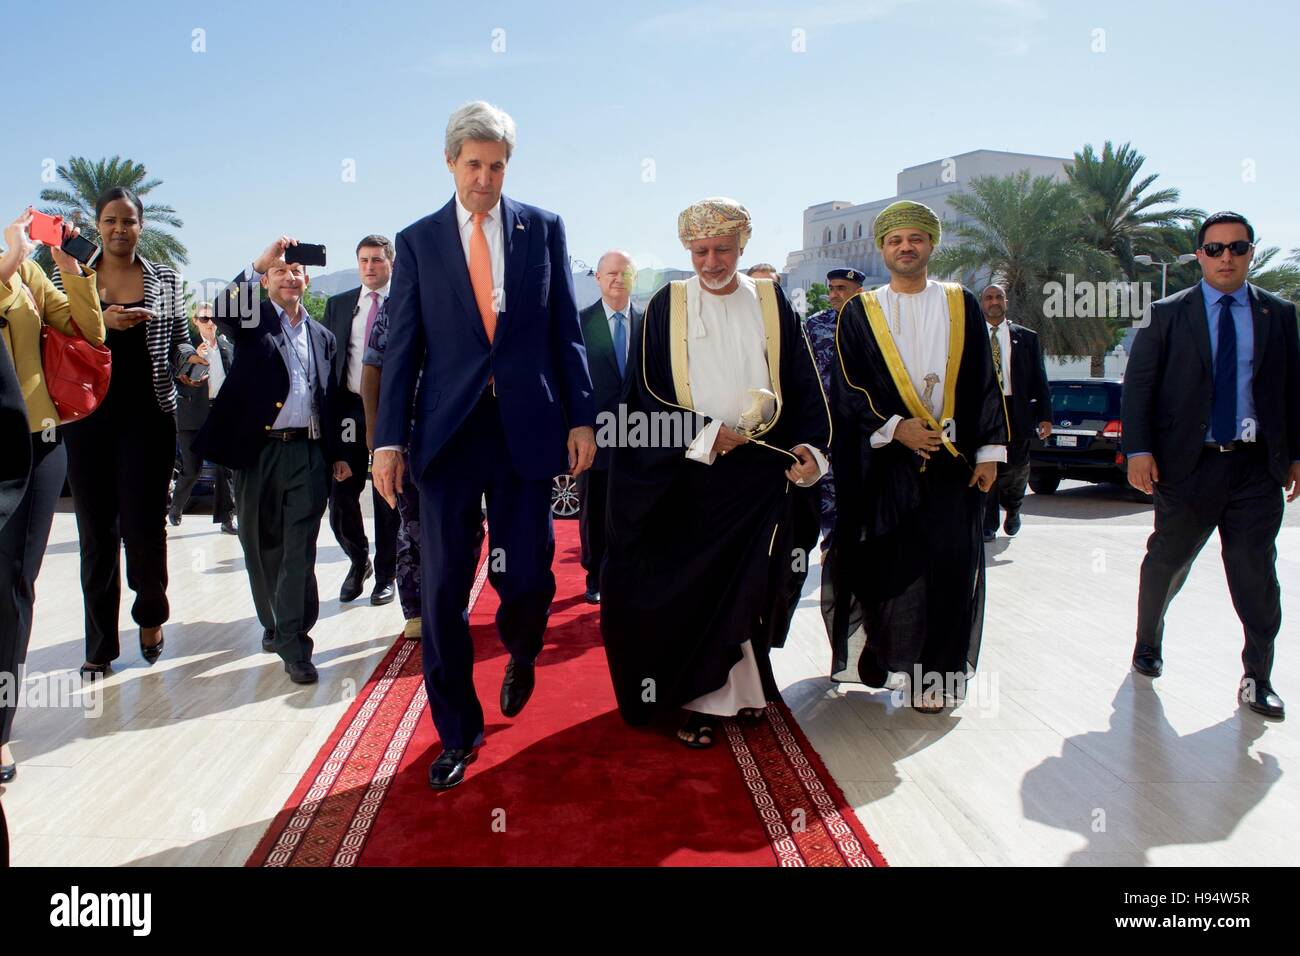 Omani Foreign Minister Yusuf bin Alawi escorts U.S. Secretary of State John Kerry as he arrives at the Ministry - Stock Image